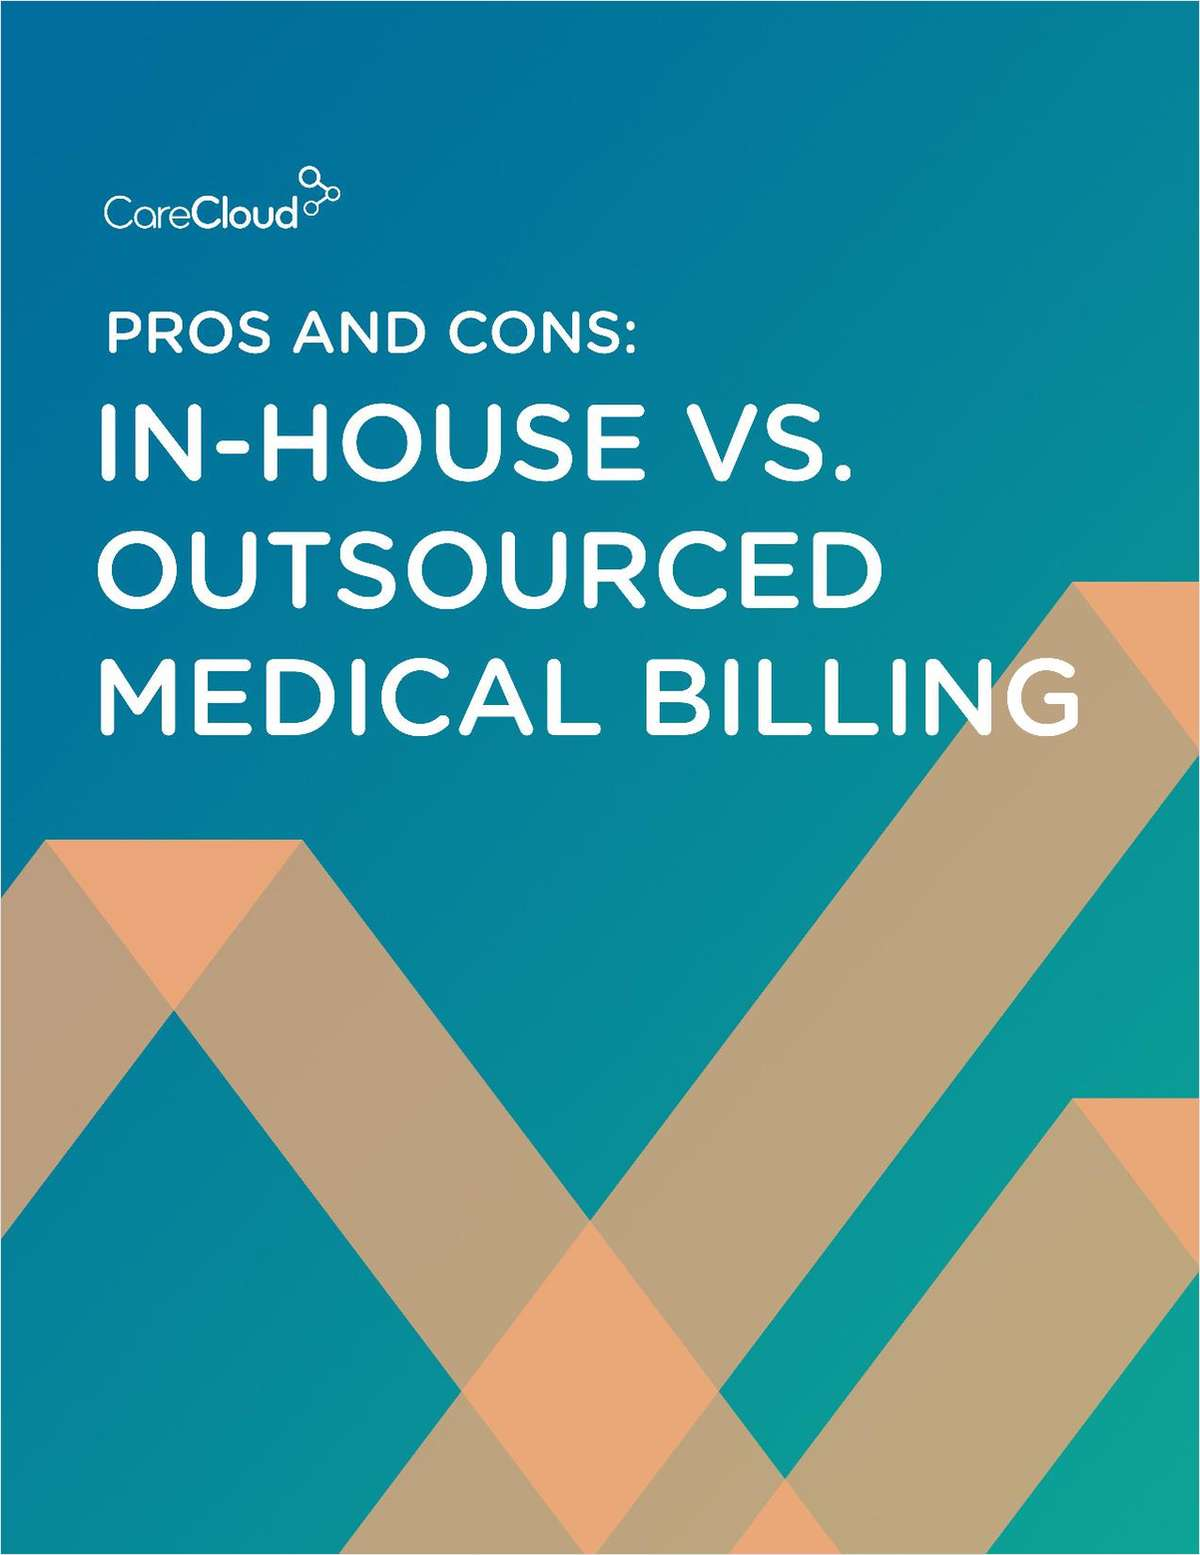 In-House vs. Outsourced Medical Billing